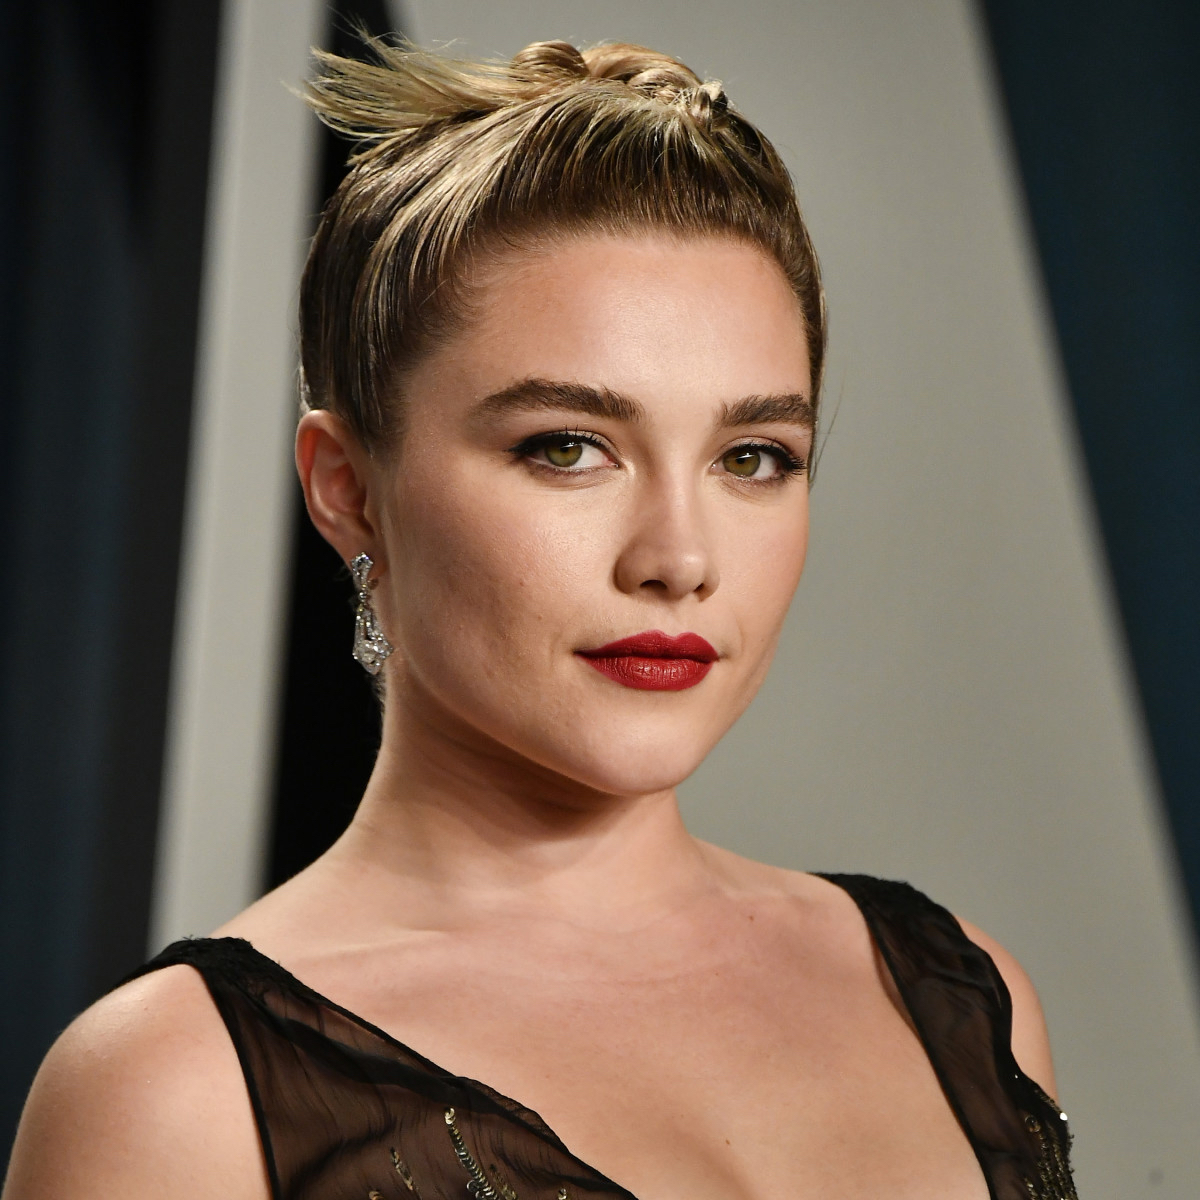 """.@Madonna reveals that she would like to see @Florence_Pugh play her in the singer's upcoming biopic. """"She's definitely up there on the list, if she'll have me."""""""